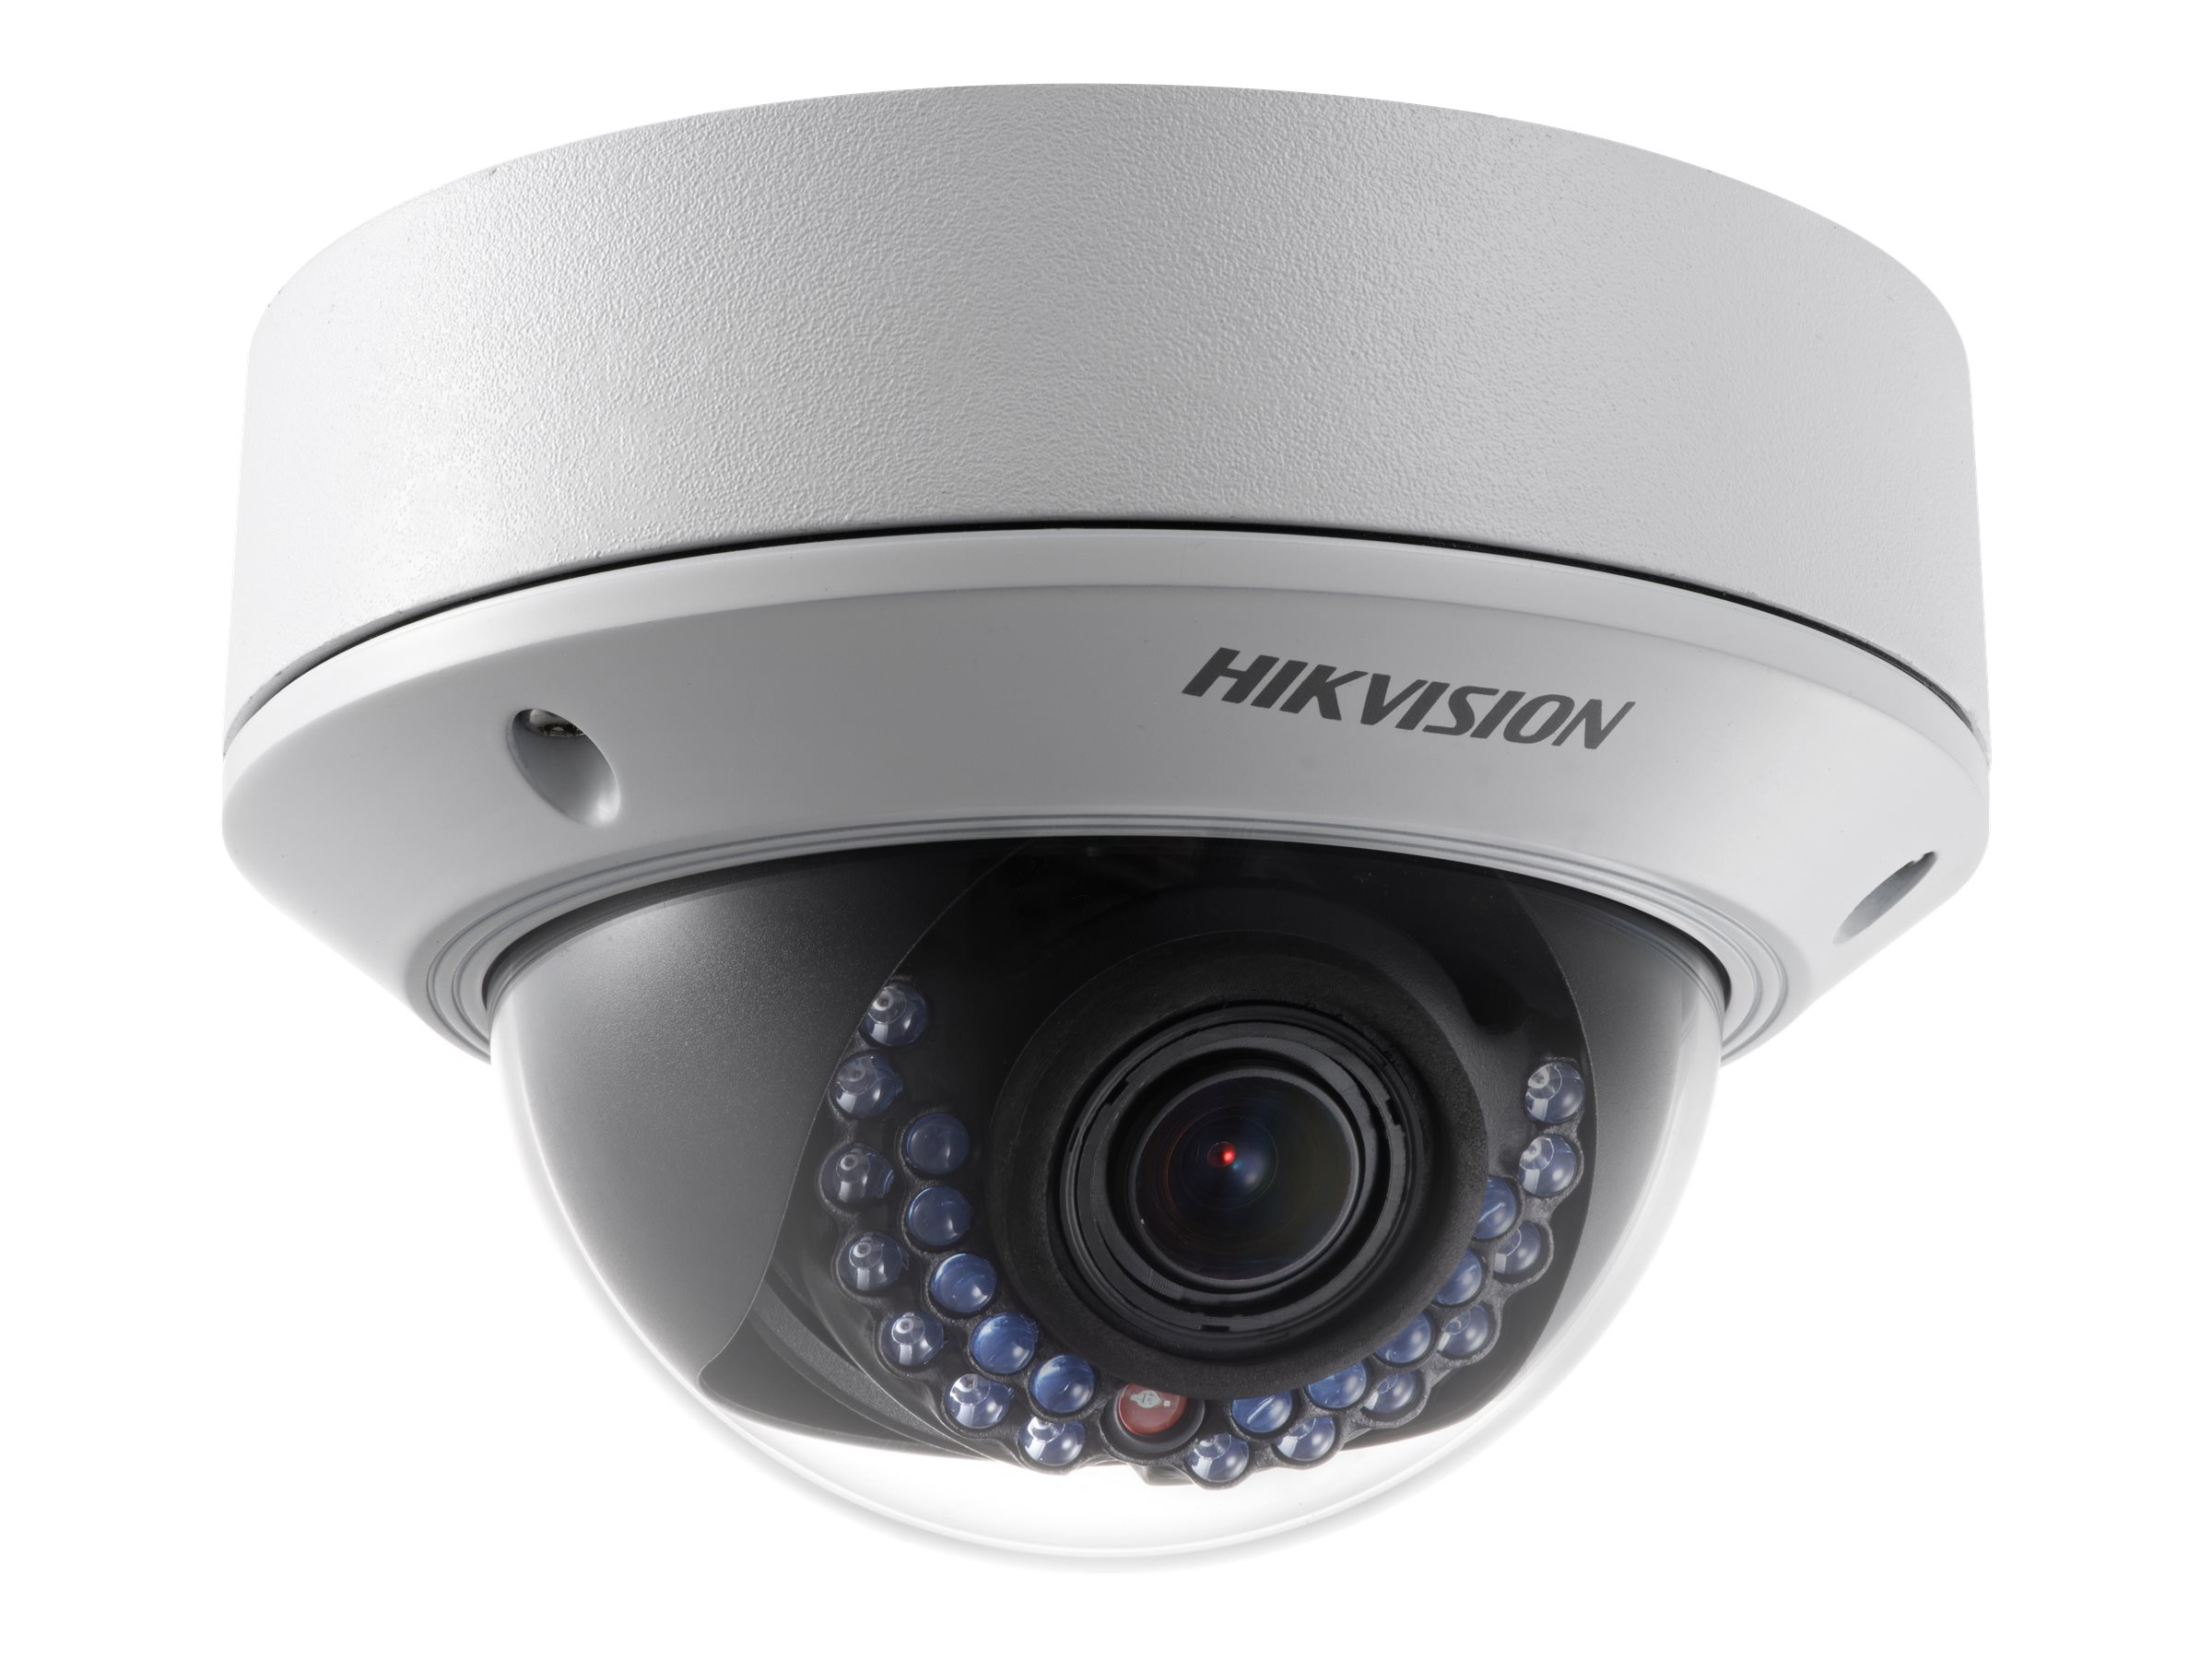 Hikvision HD Network Camera DS-2CD2710F-IS - network surveillance camera